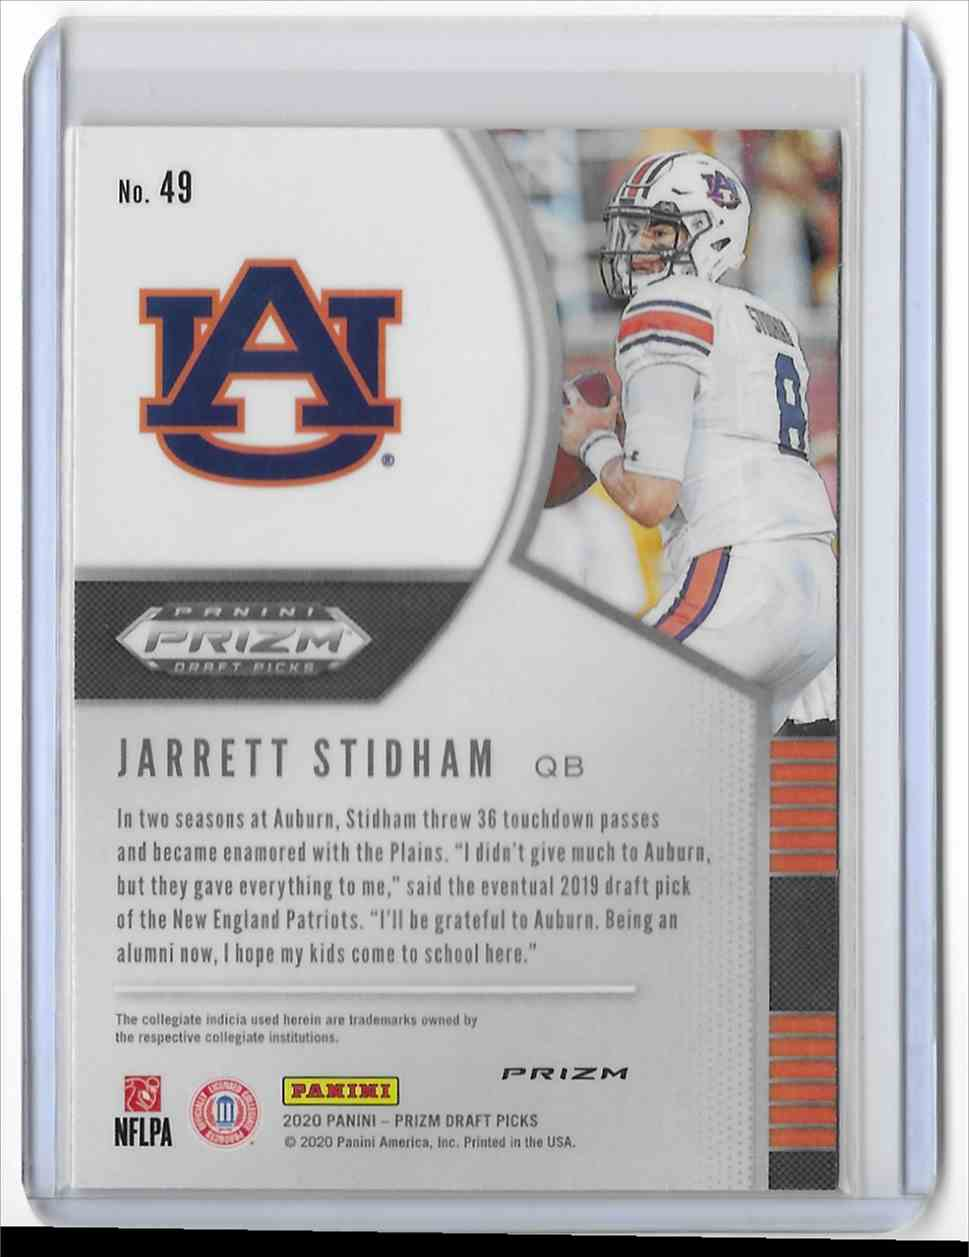 2020 Panini Prizm Draft Picks Red Jarrett Stidham #49 card back image